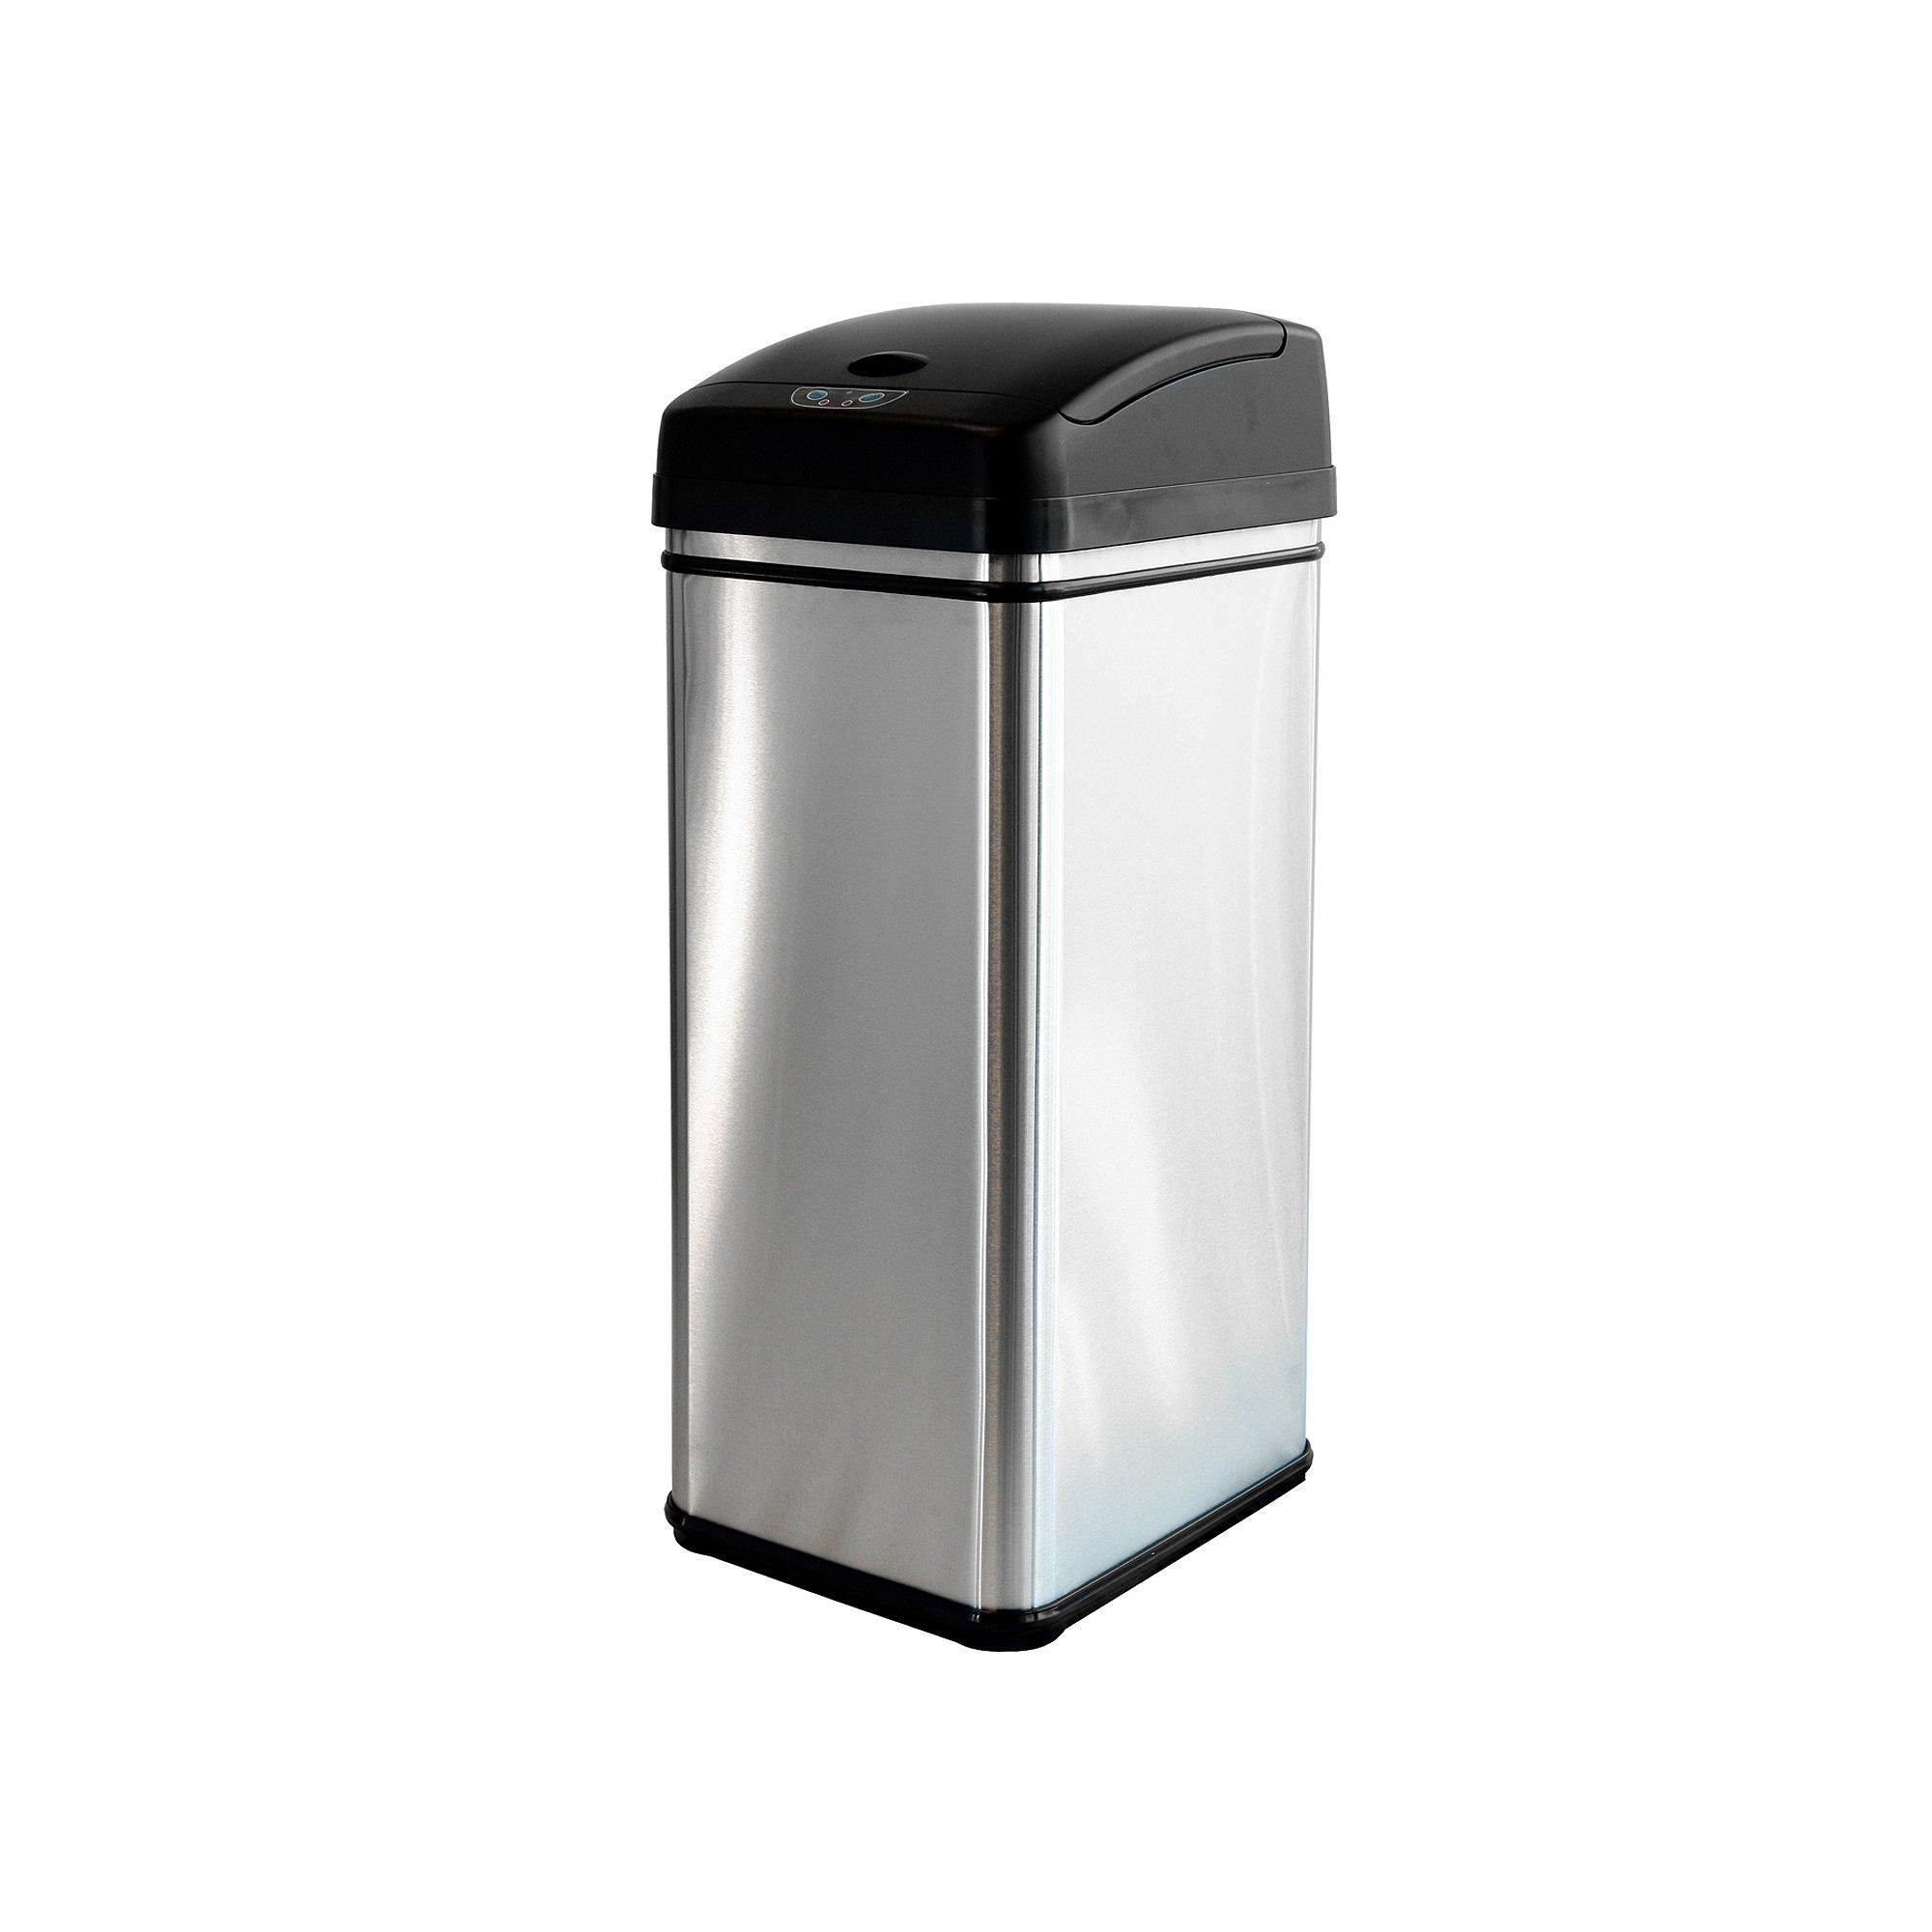 Itouchless Deodorizer 13 Gallon Stainless Steel Touchless Trash